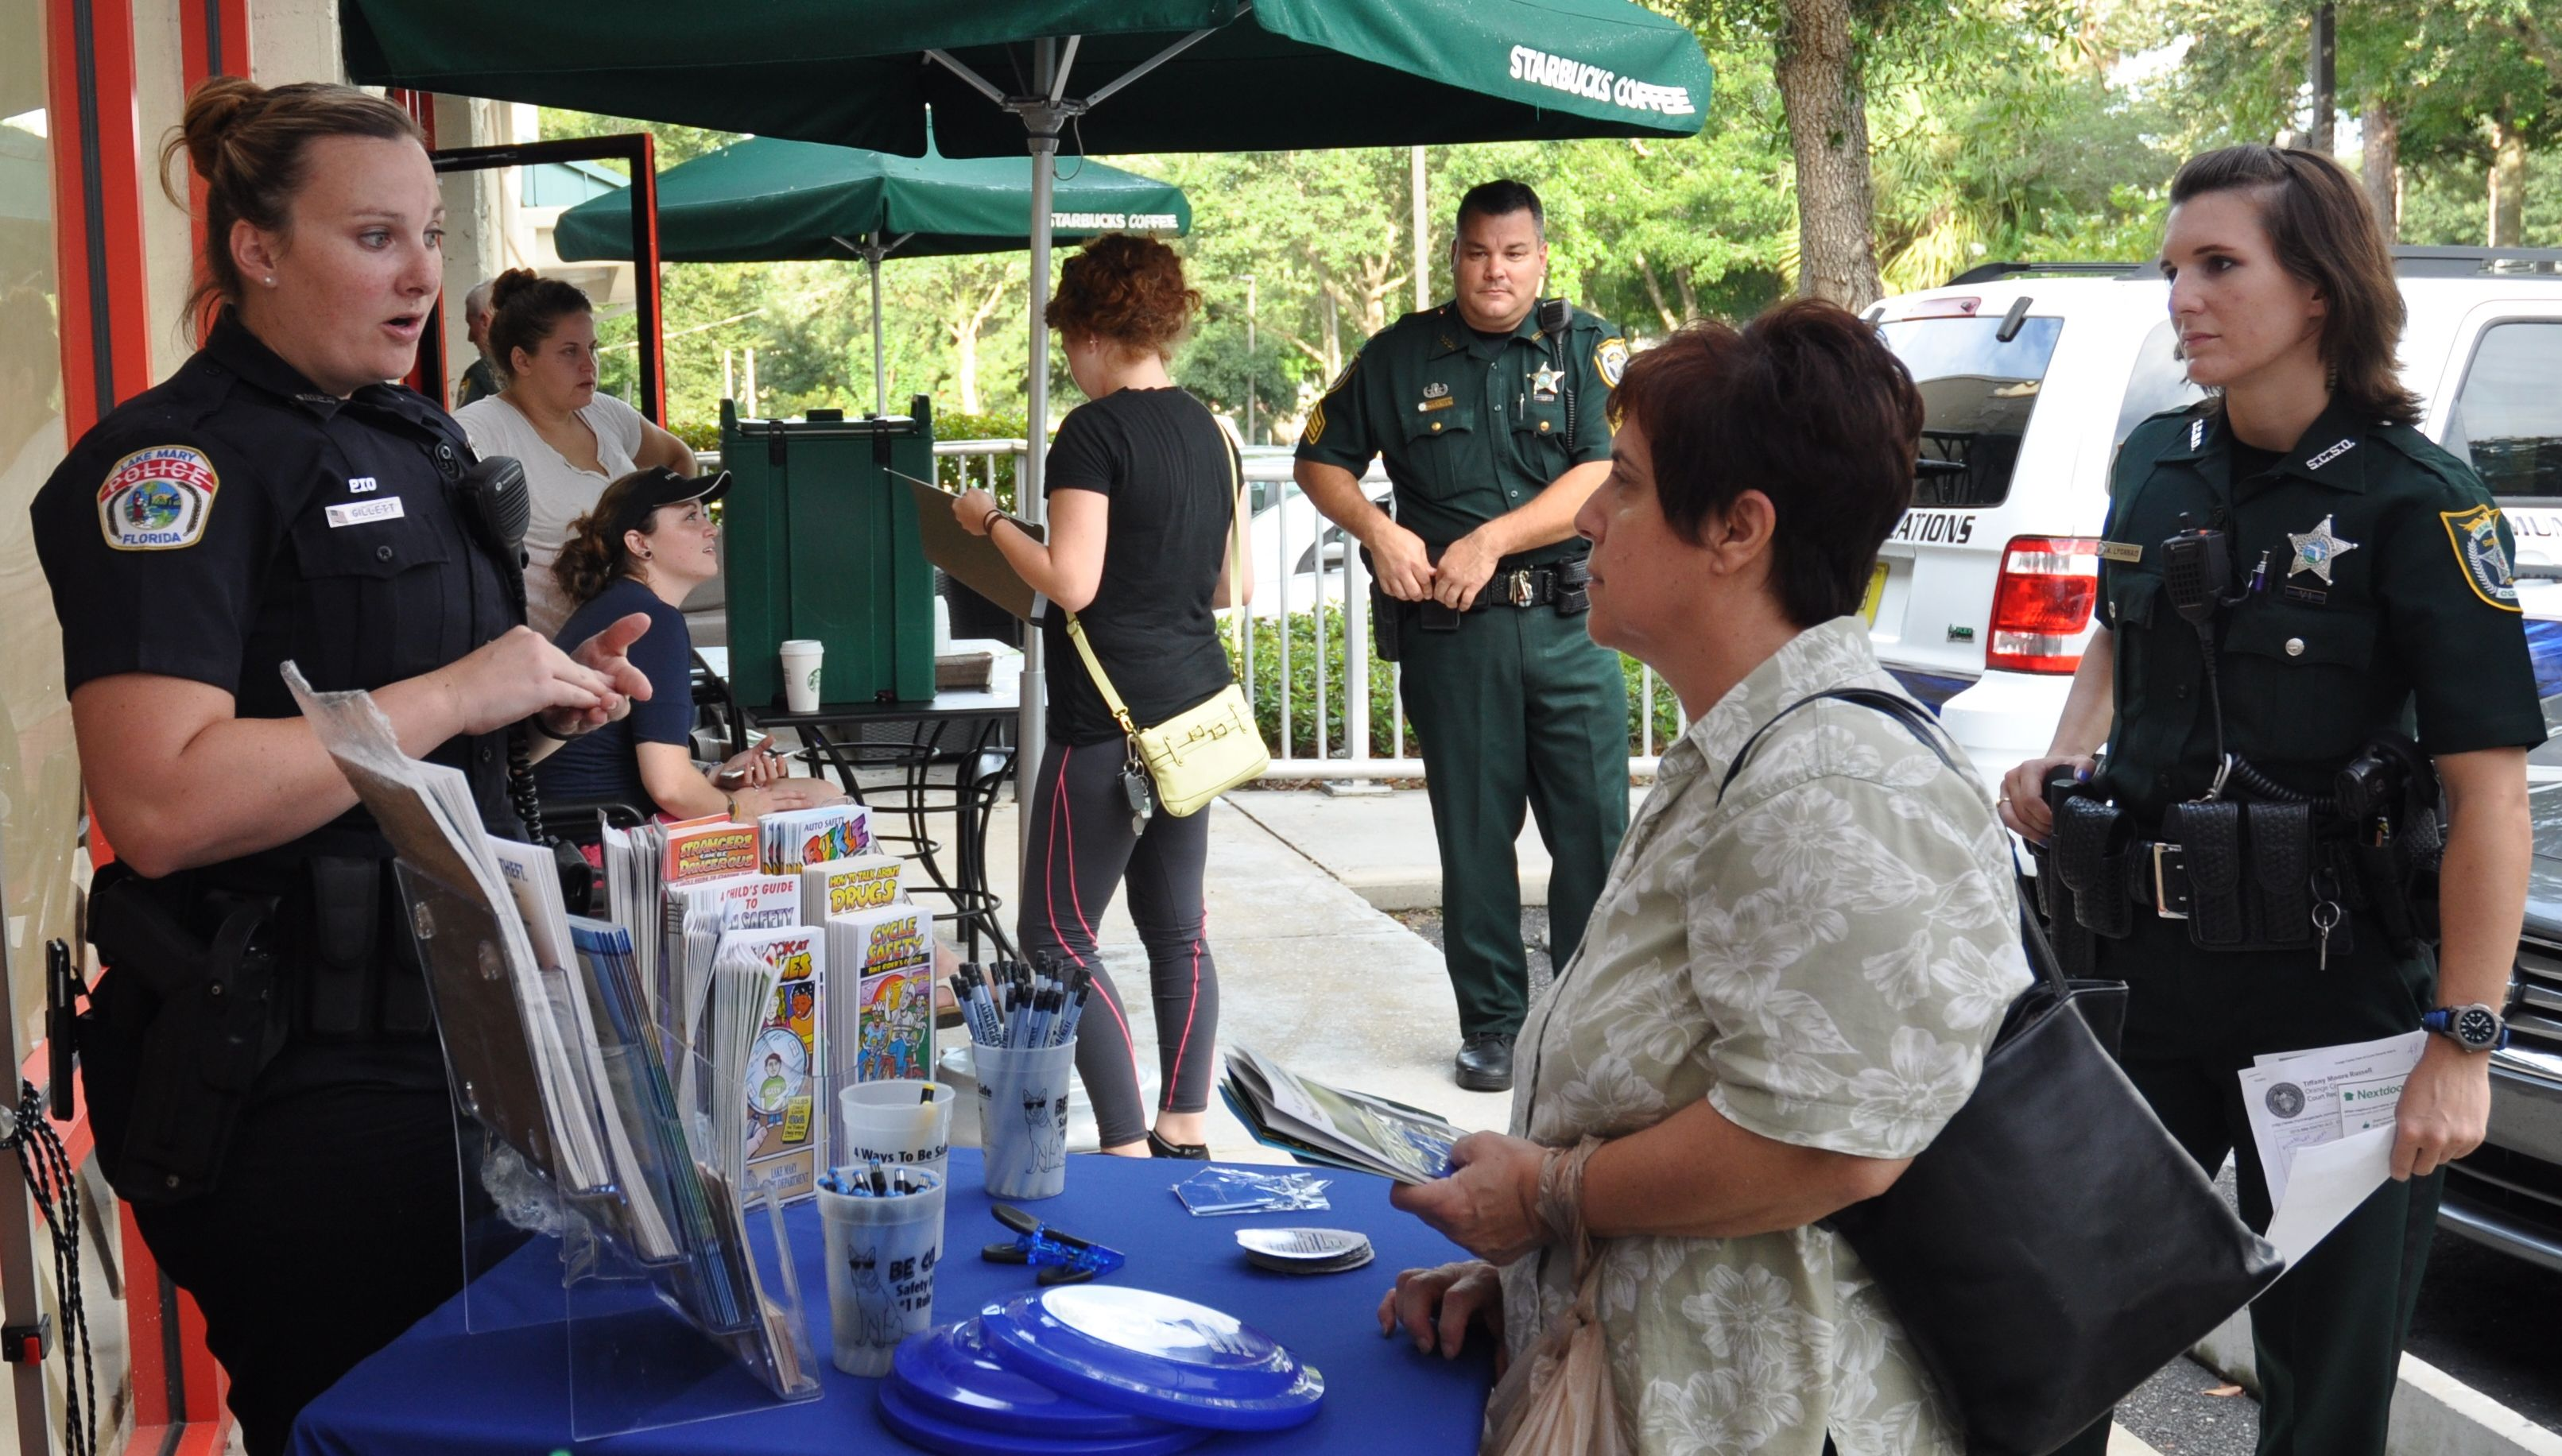 We would like thank the Lake Mary Police Department for co-hosting Coffee with a Cop last evening! Local residents attended and engaged in some great conversation.